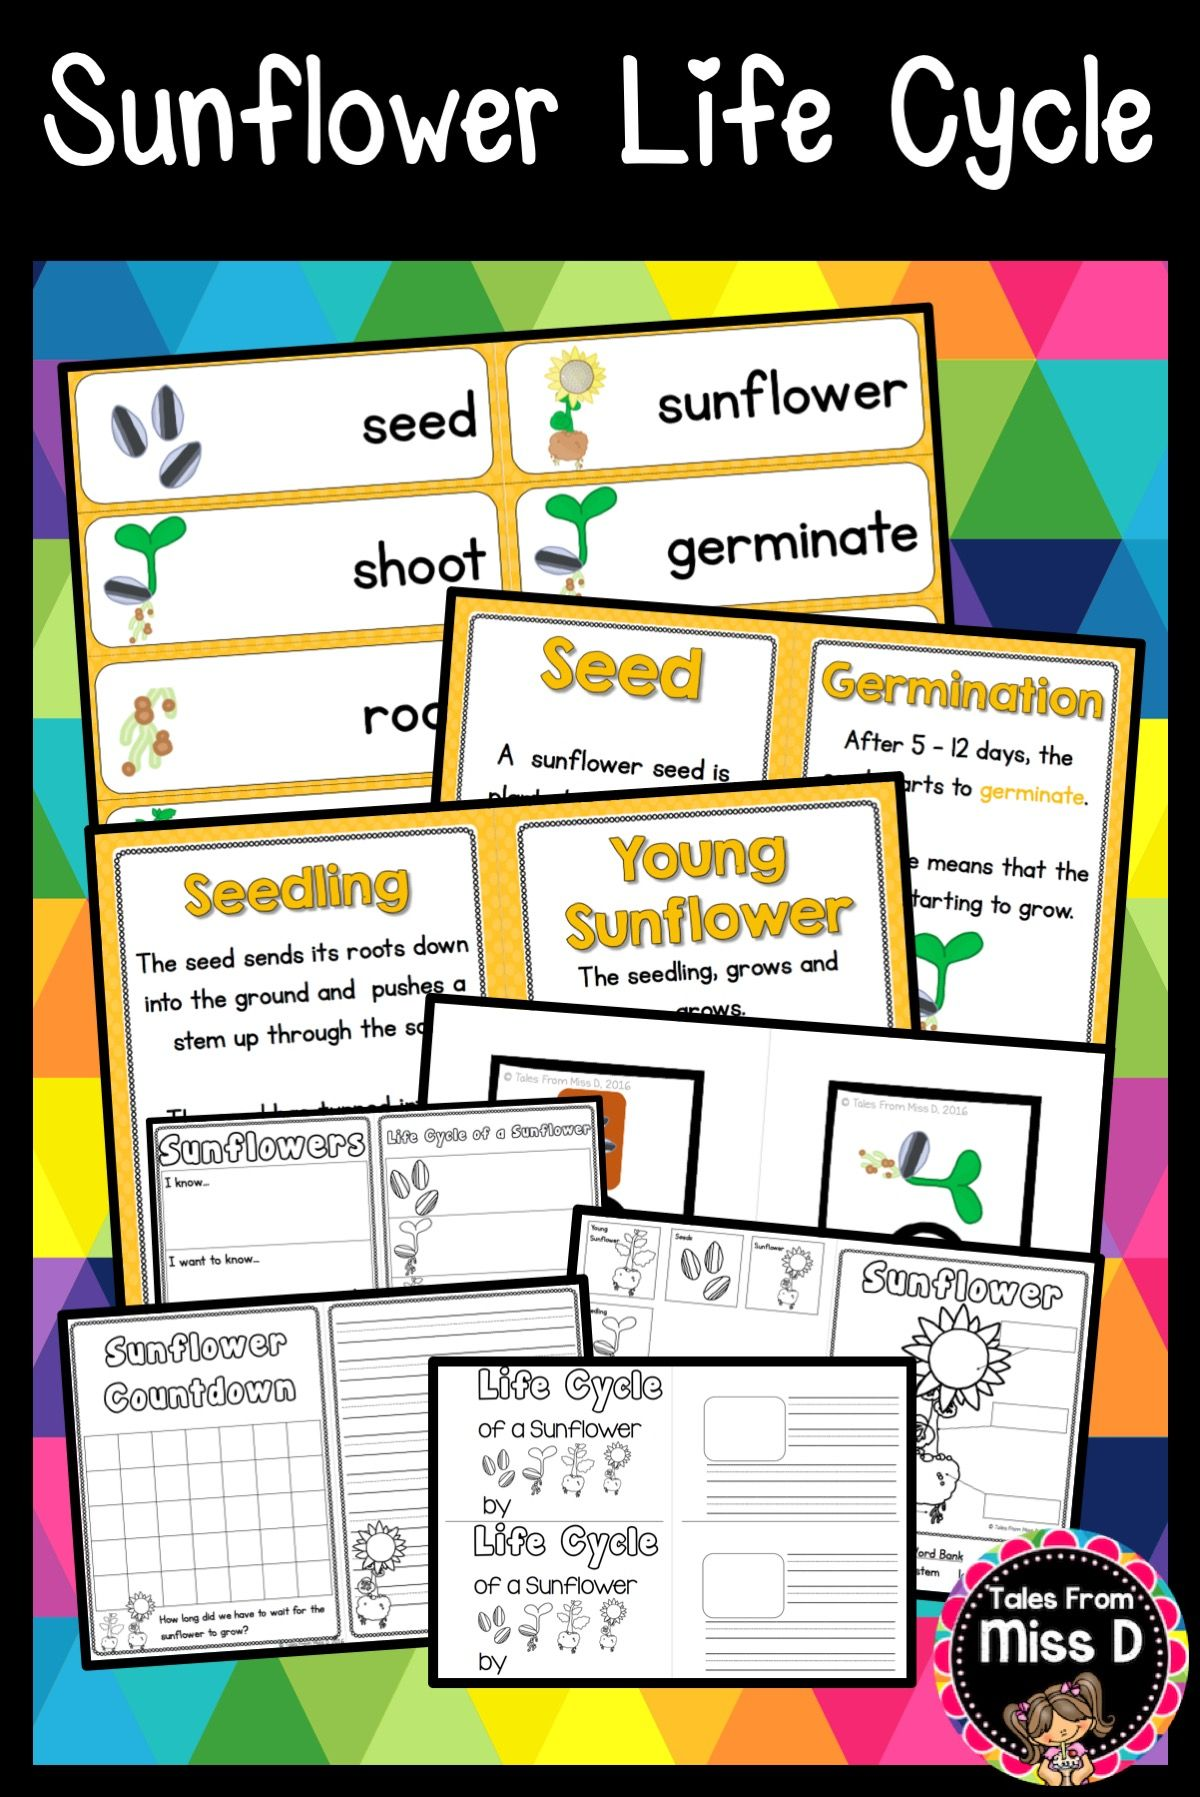 This Sunflower Life Cycle Pack Includes 10 Resources